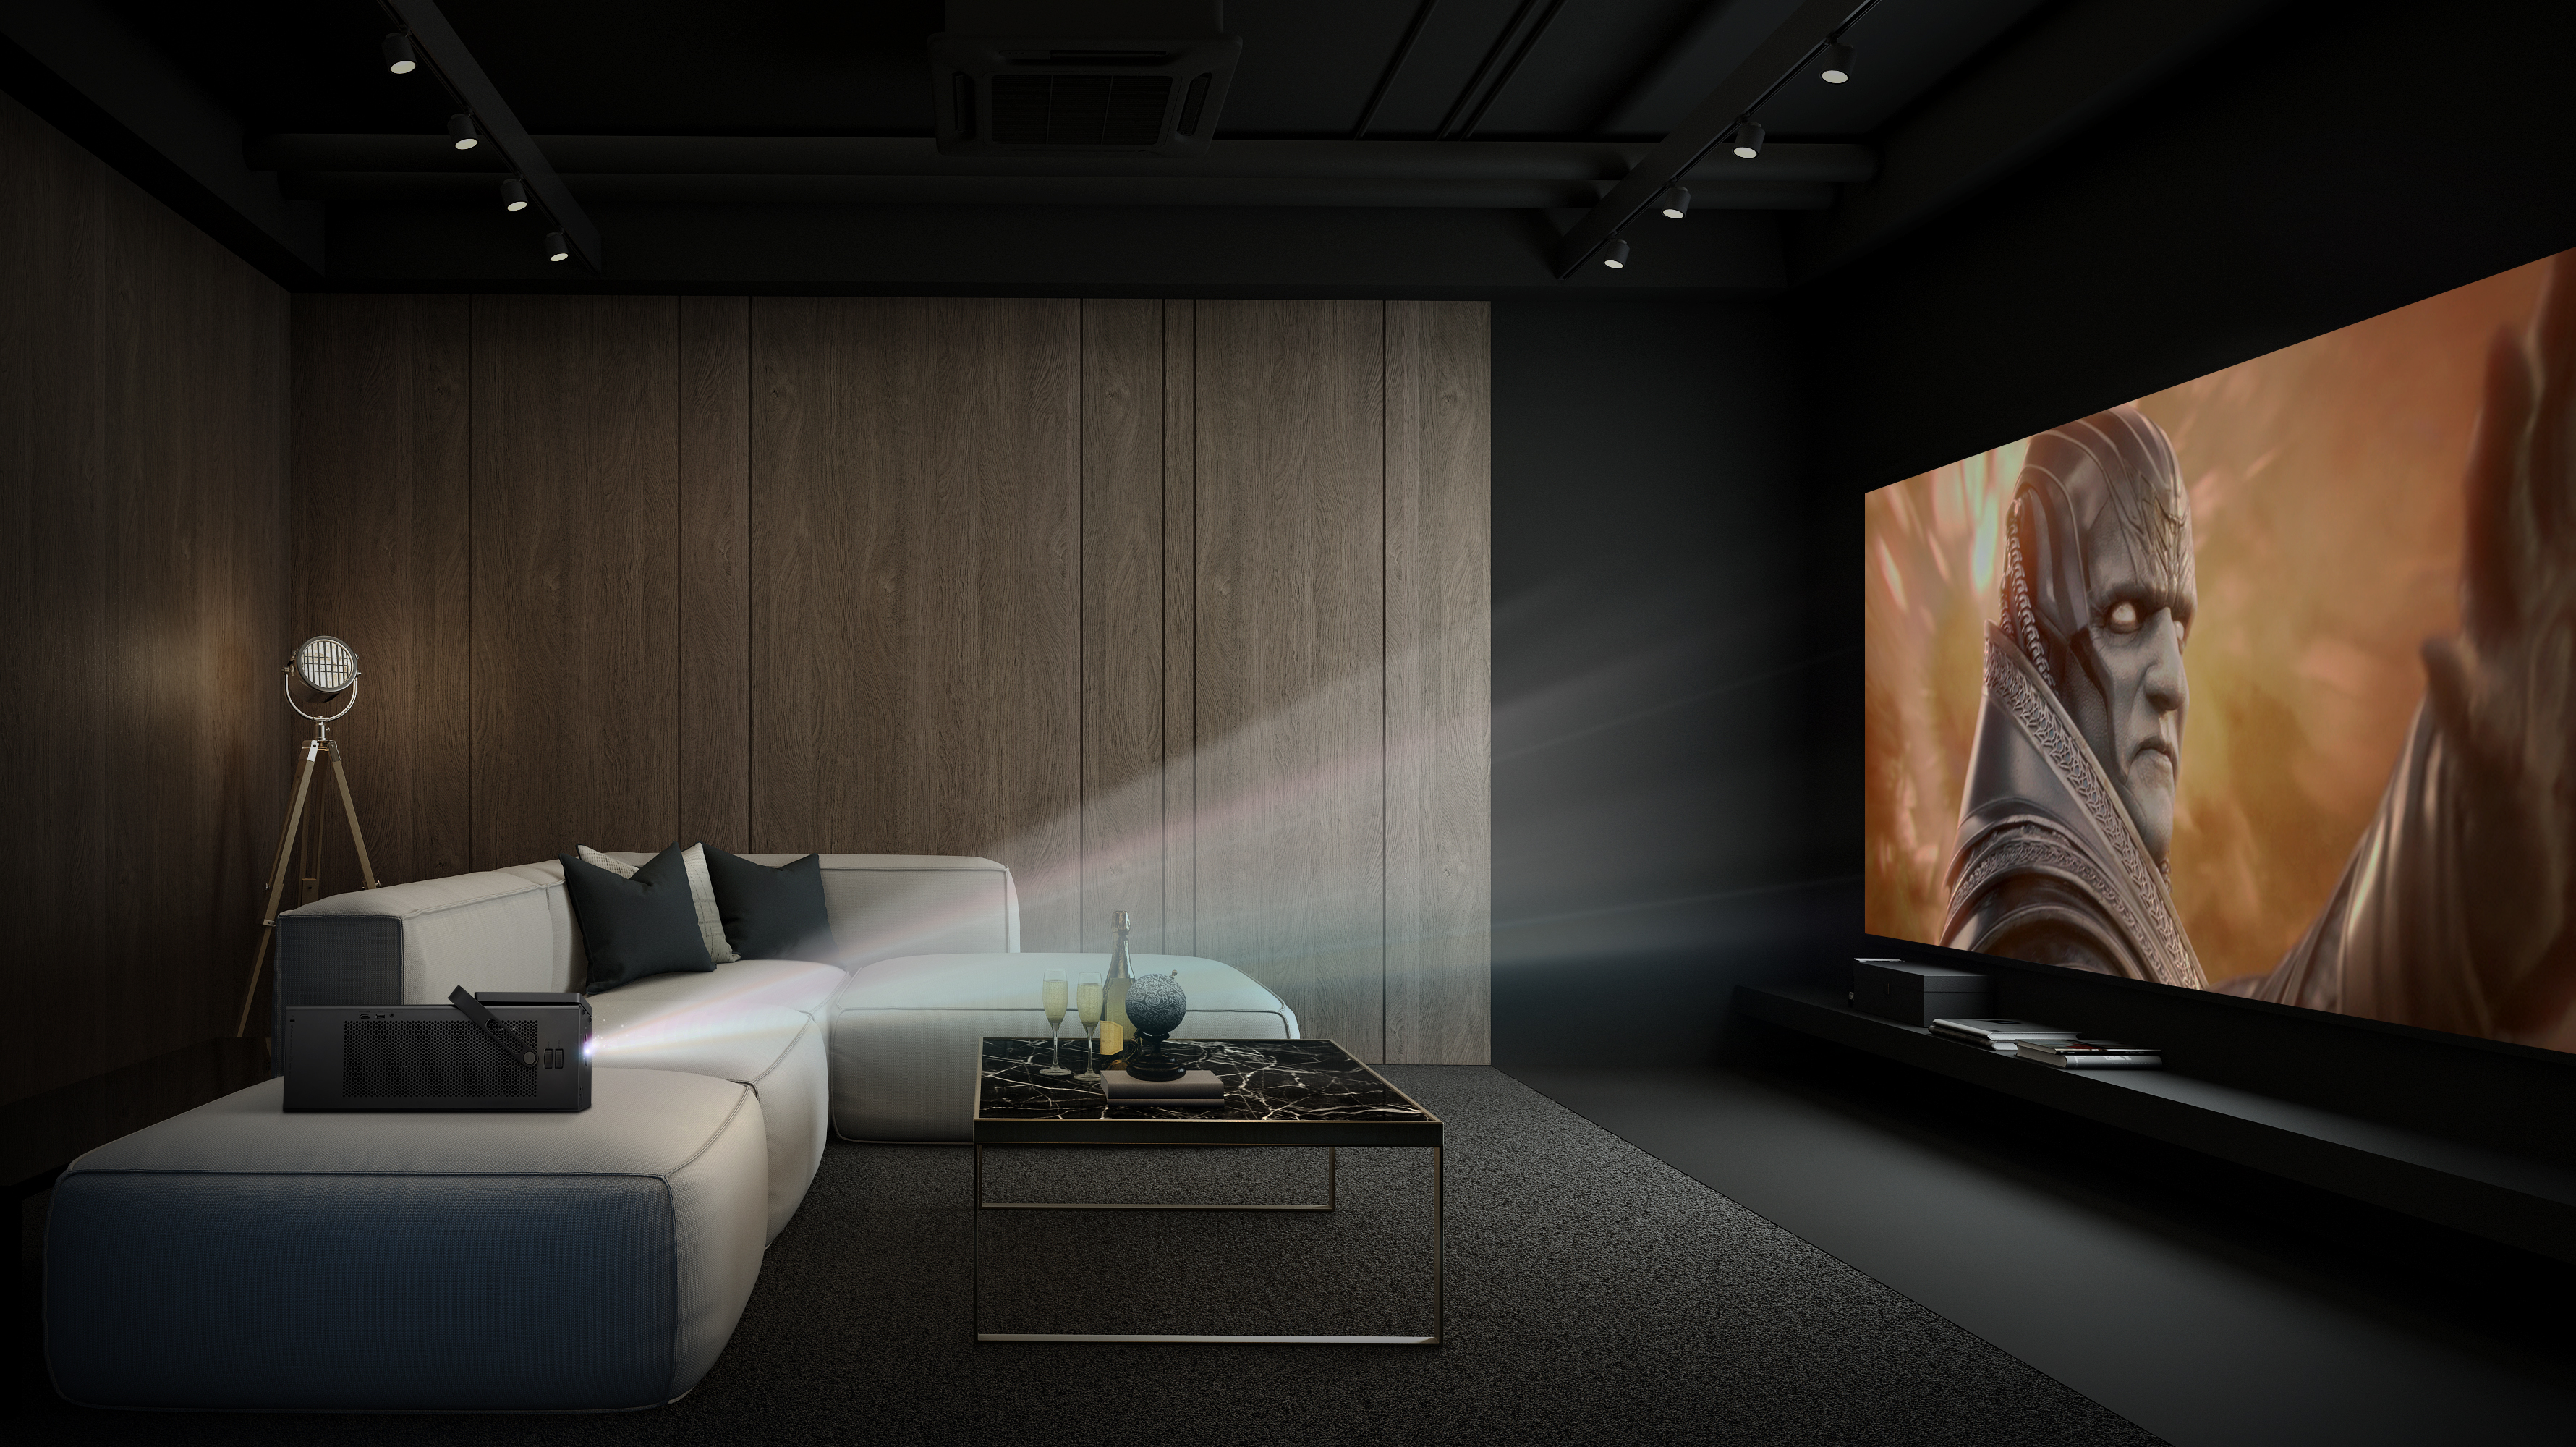 If you are looking for your first 4K projector, LG's award